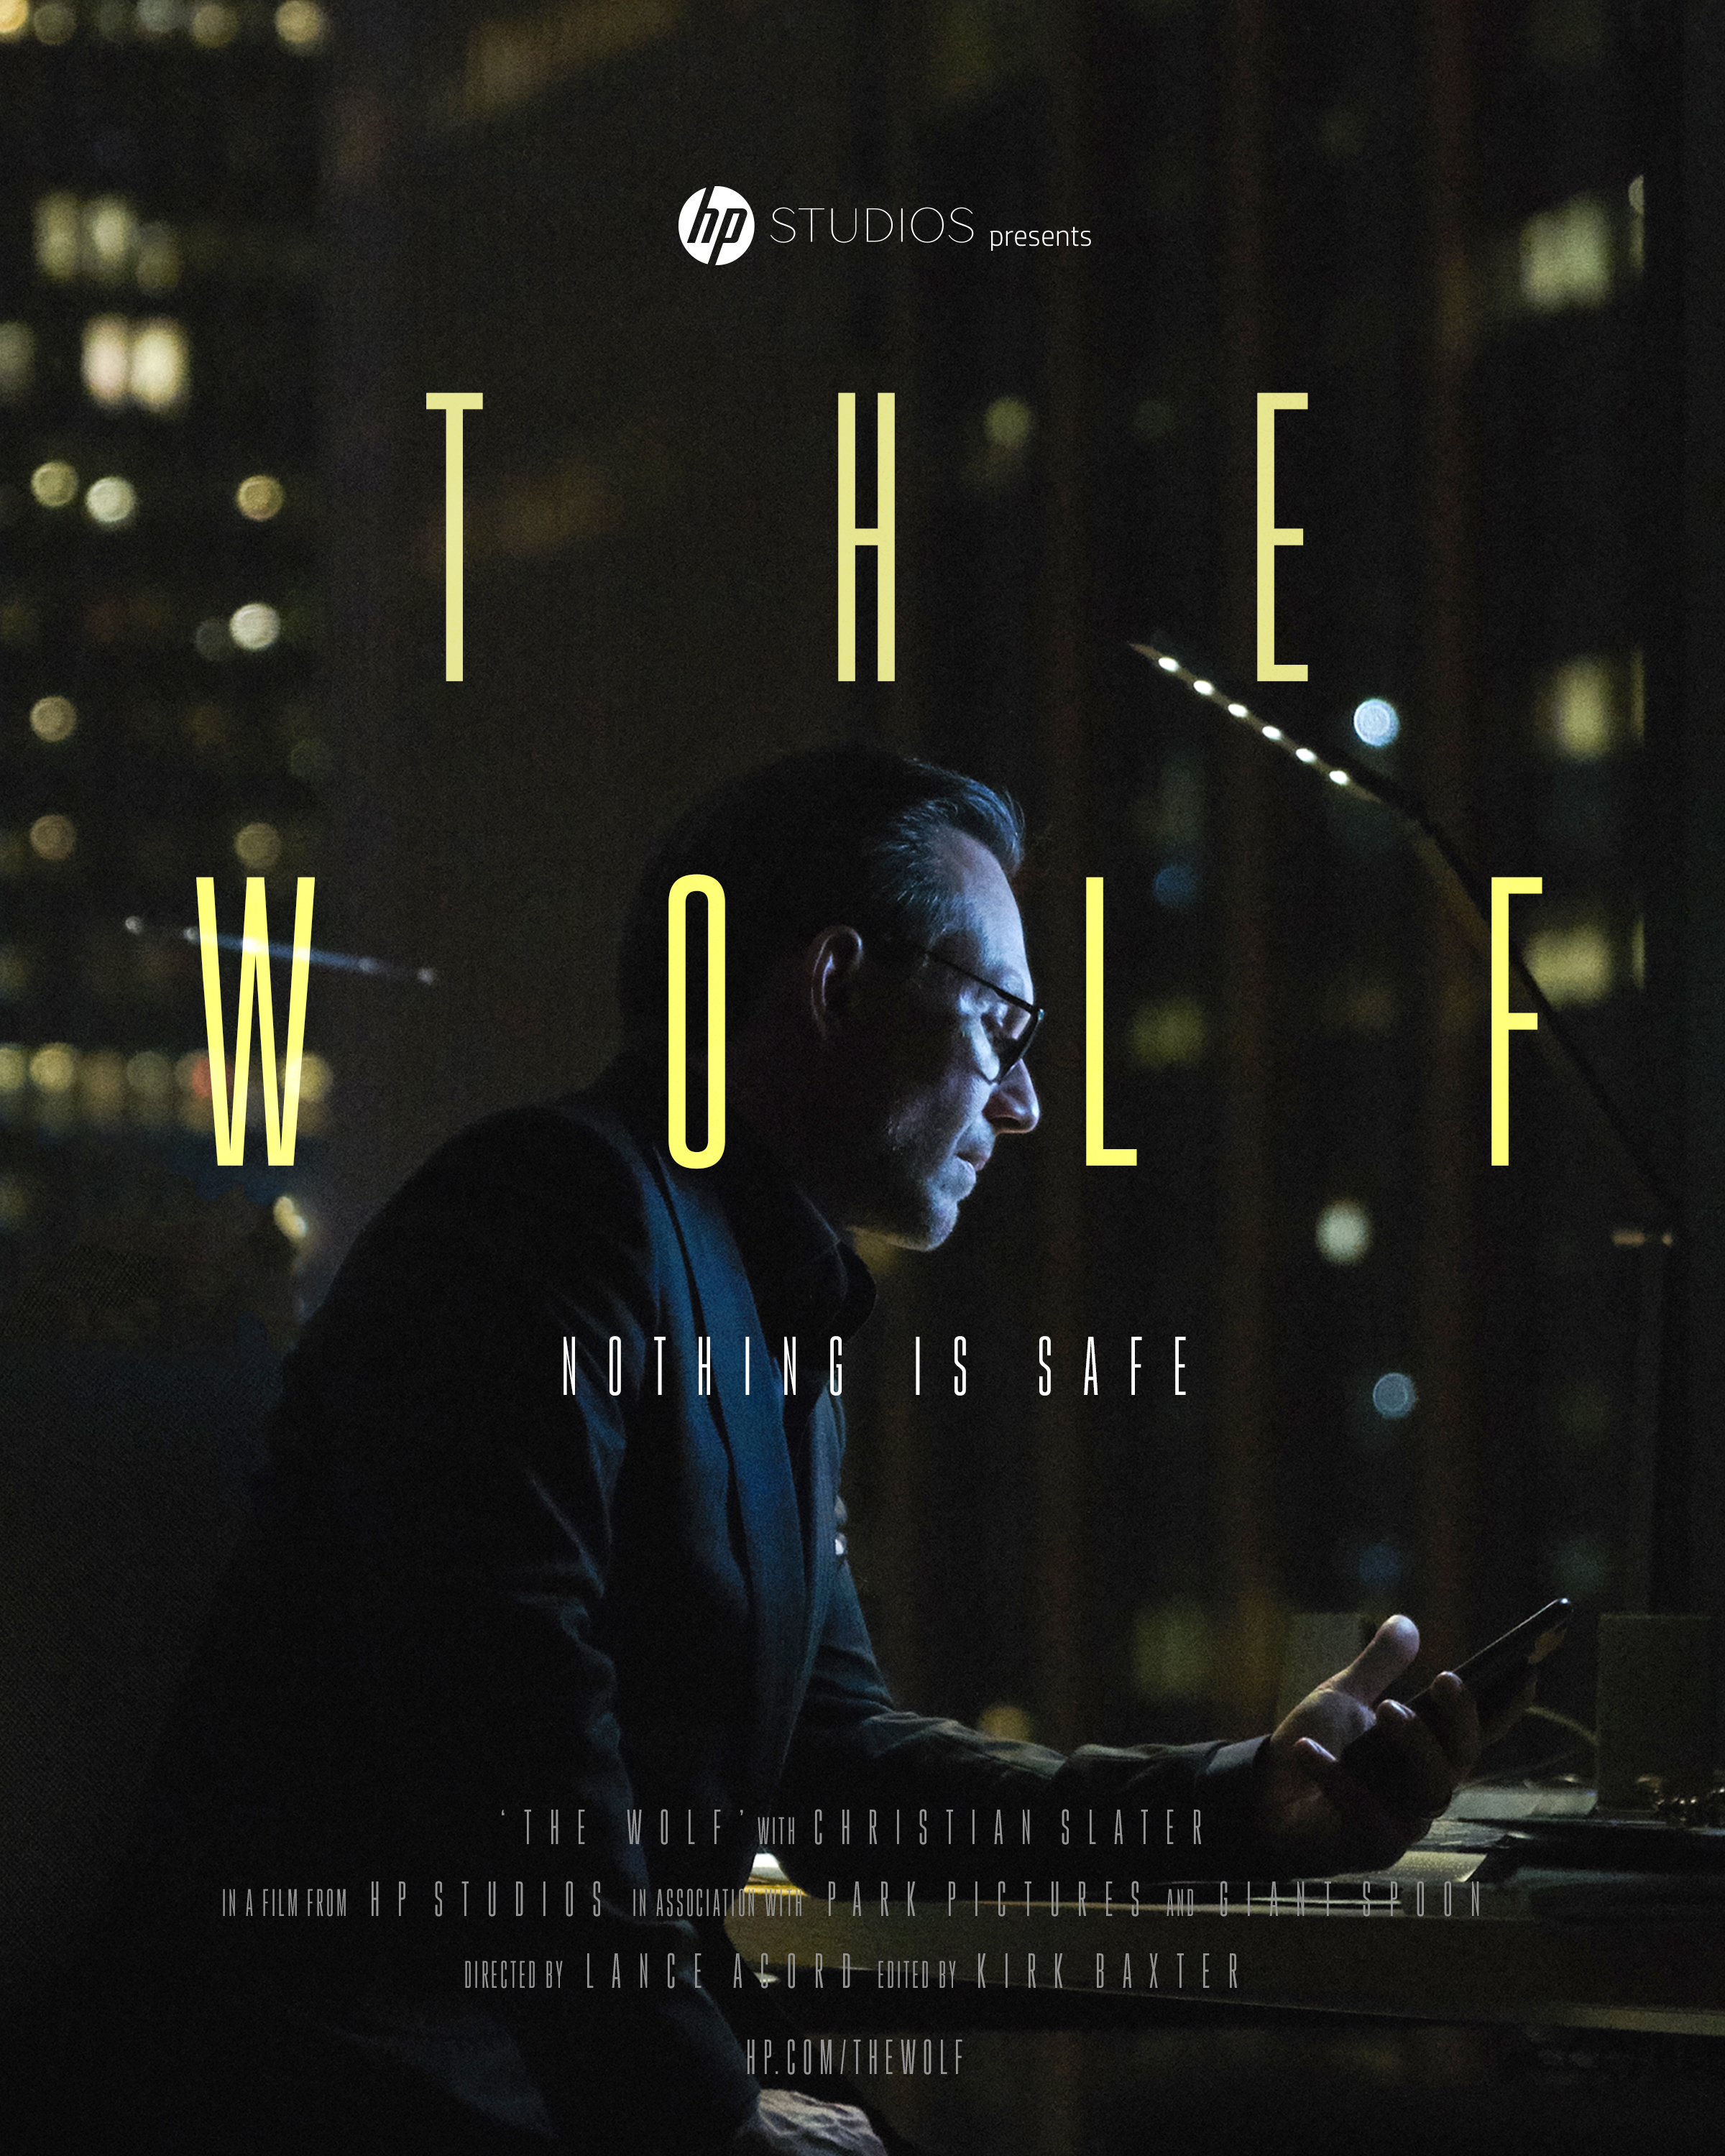 The Wolf Thumbnail